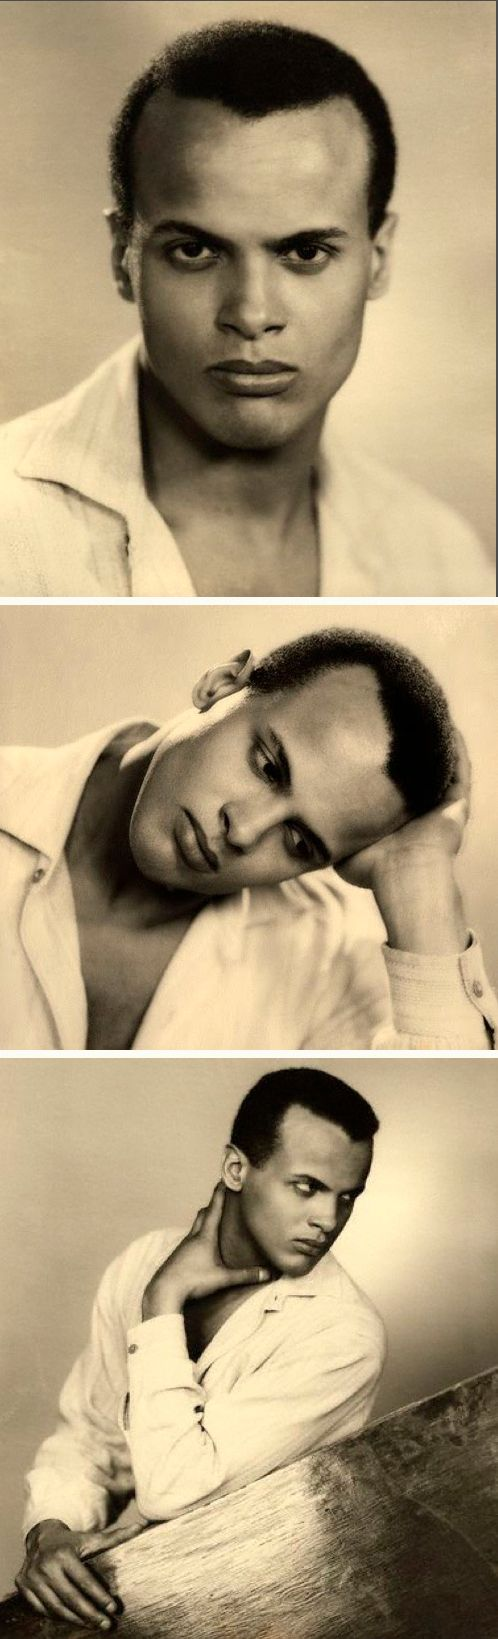 Harry Belafonte, The King of Calypso. He's one of the most important figures in music and humanitarianism.